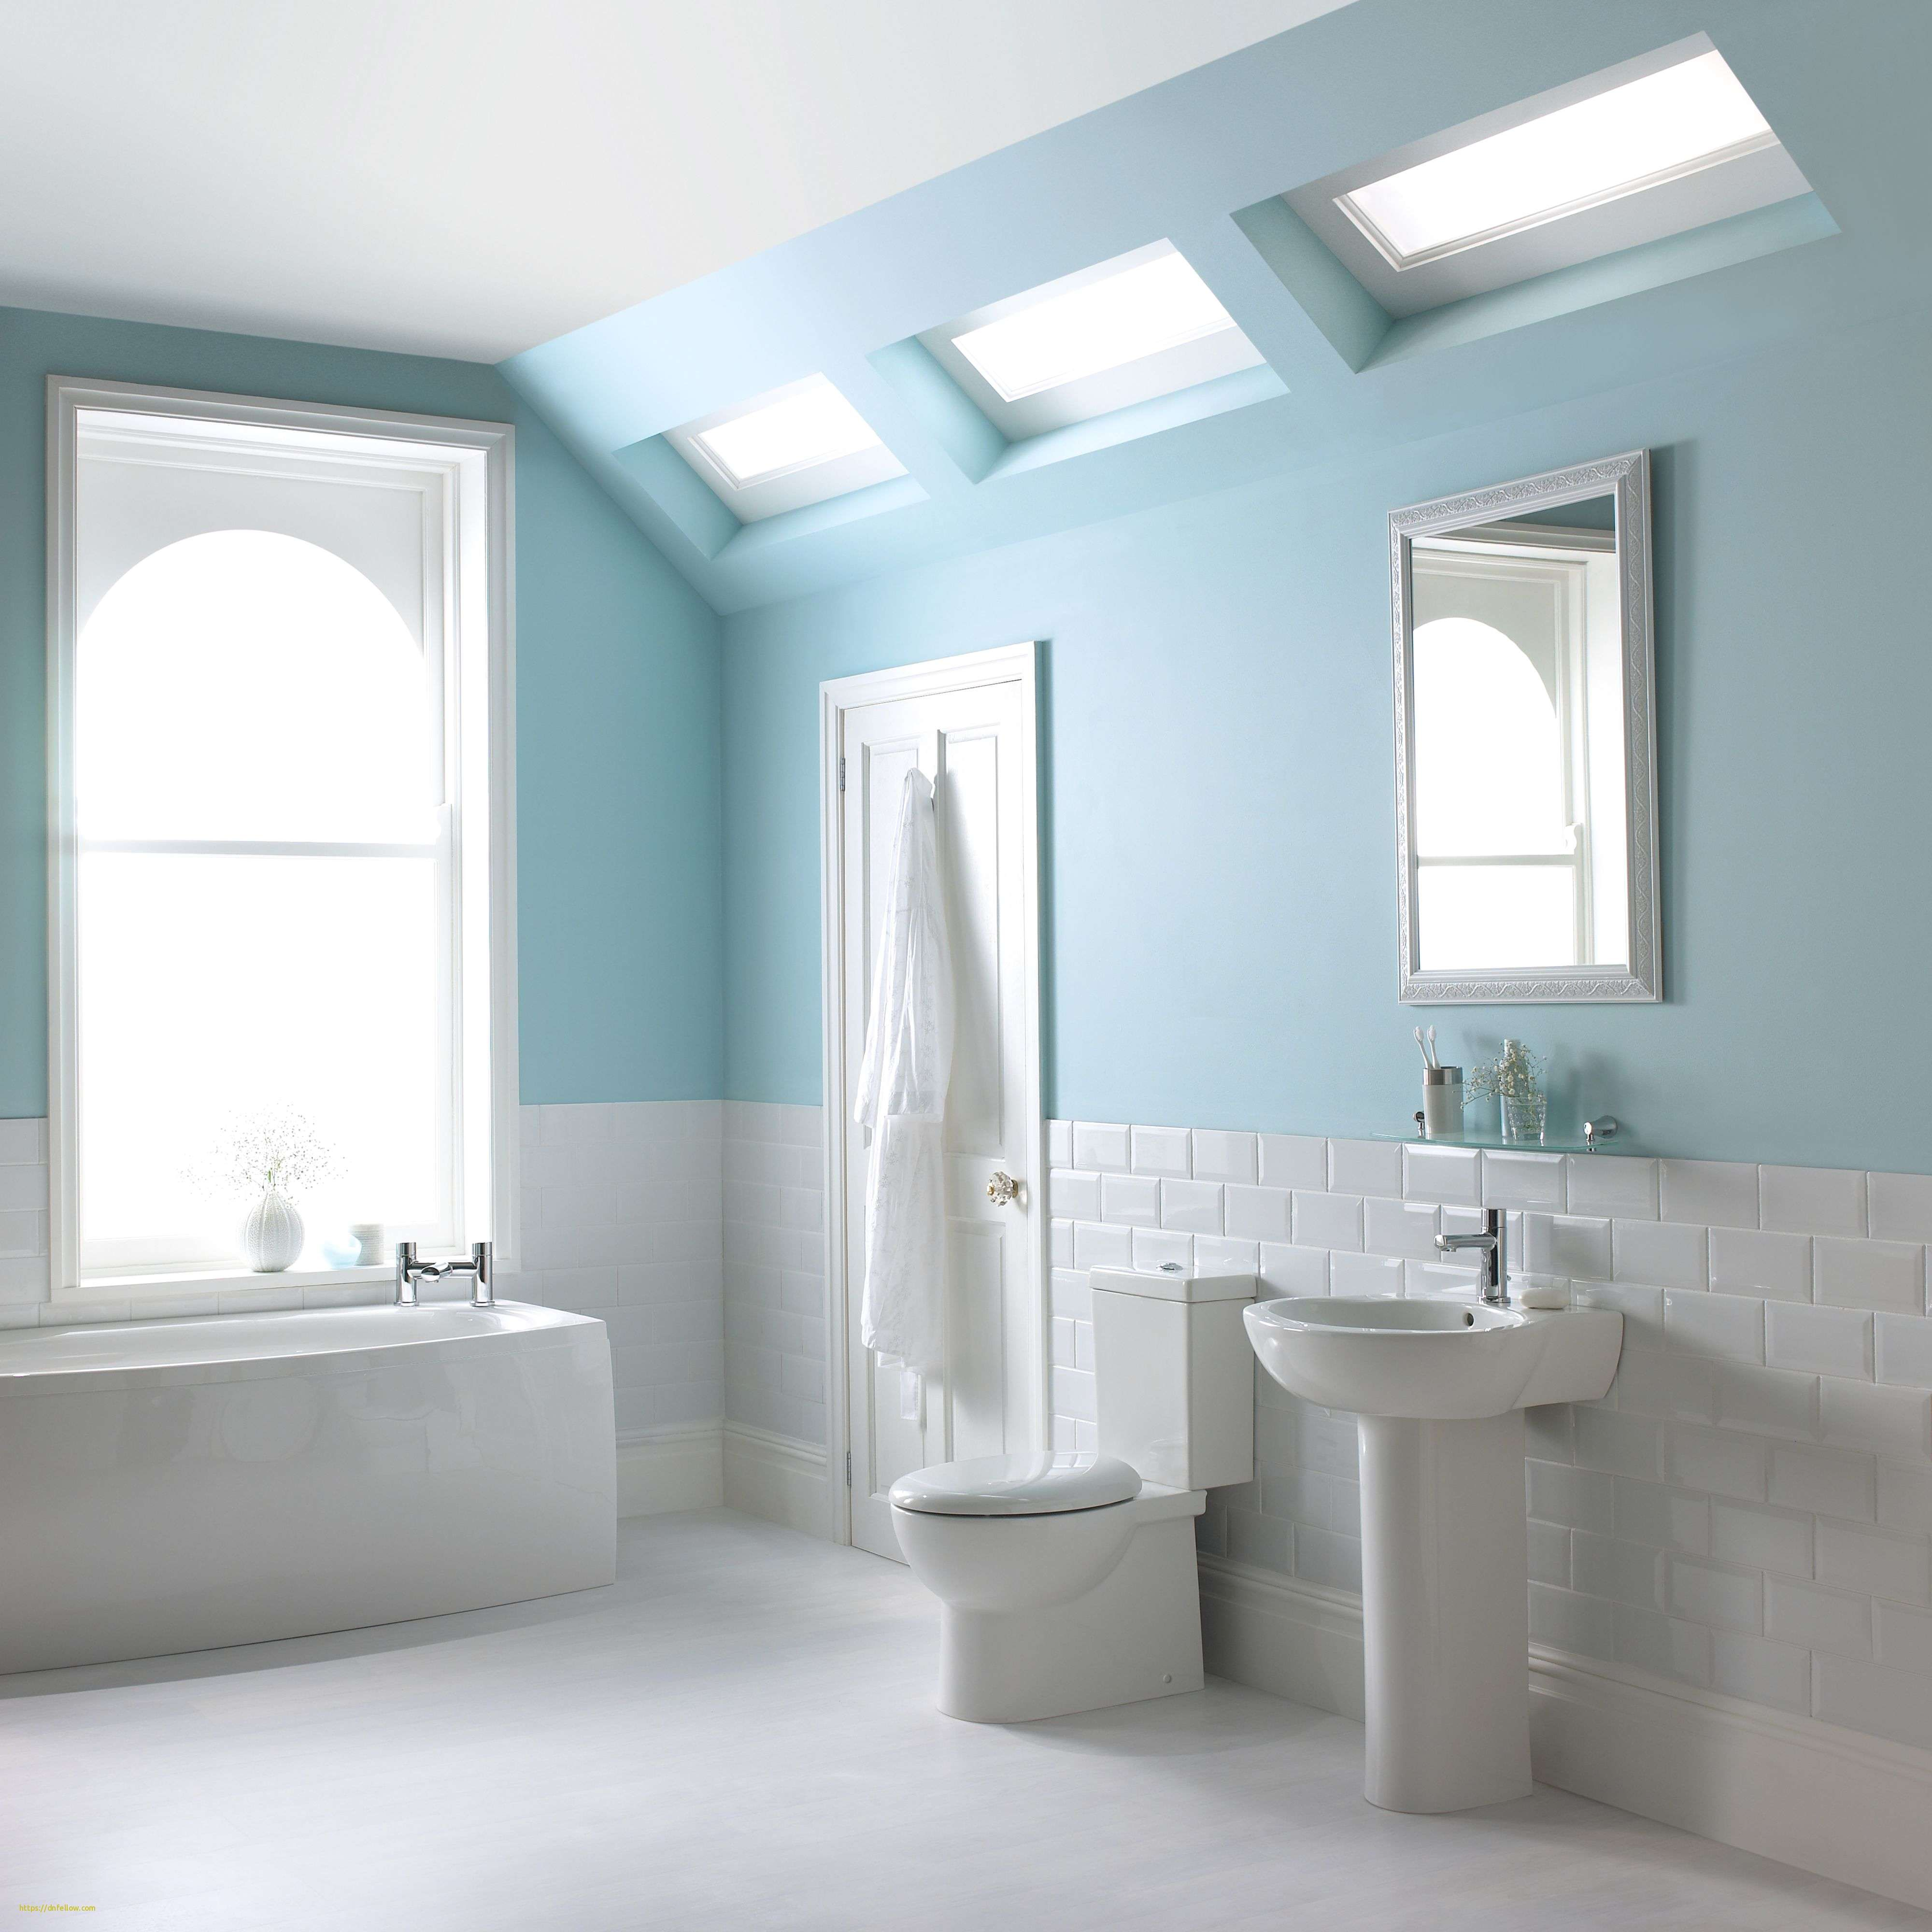 Best Of B And Q Bathroom Design Online Best Of B And Q Bathroom Design Online Pleasant In Order To My Personal Blog On This Https Dnfellow Com